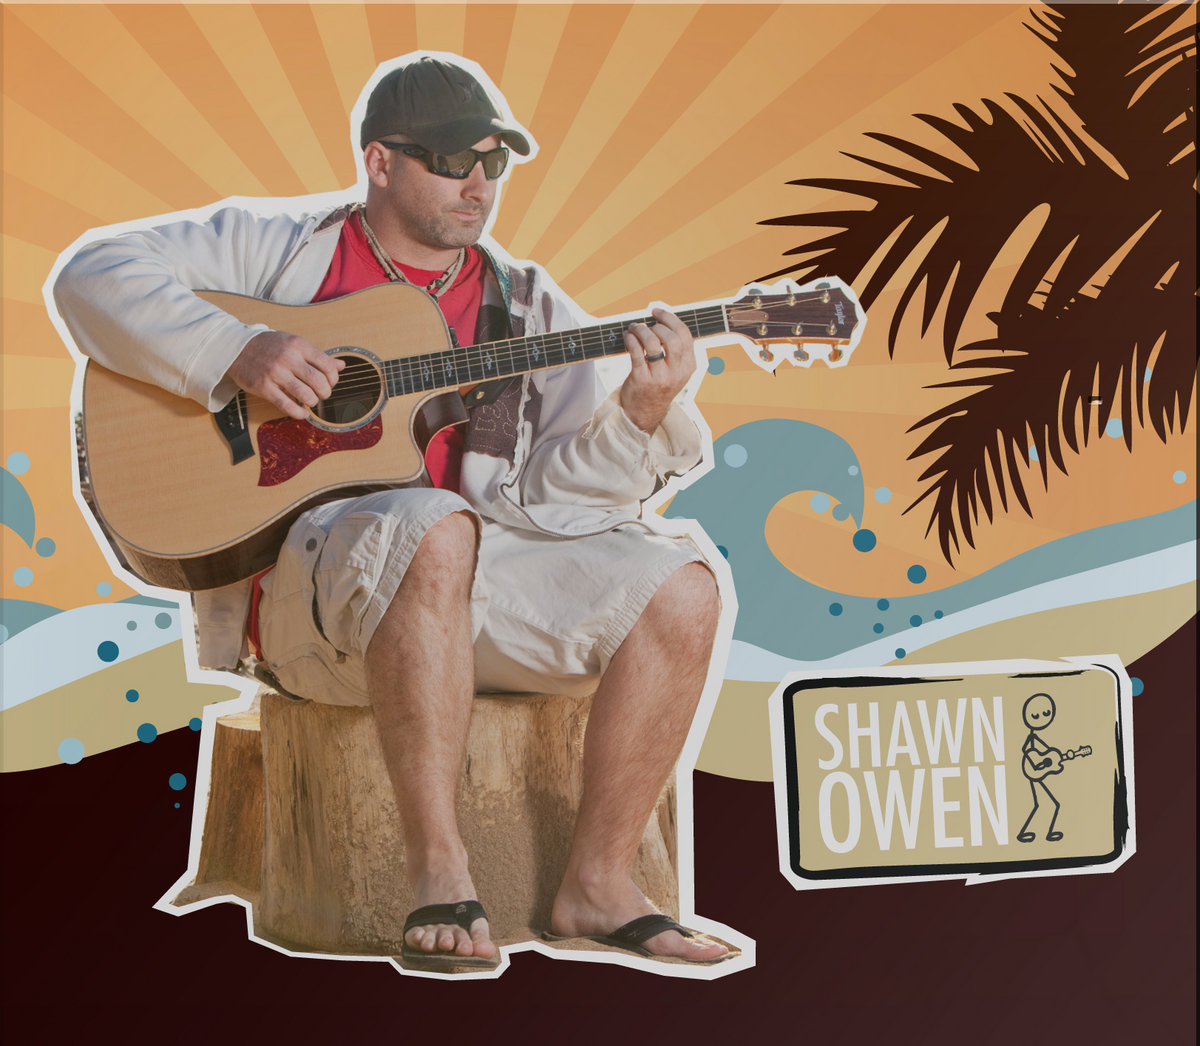 Image result for shawn owen band